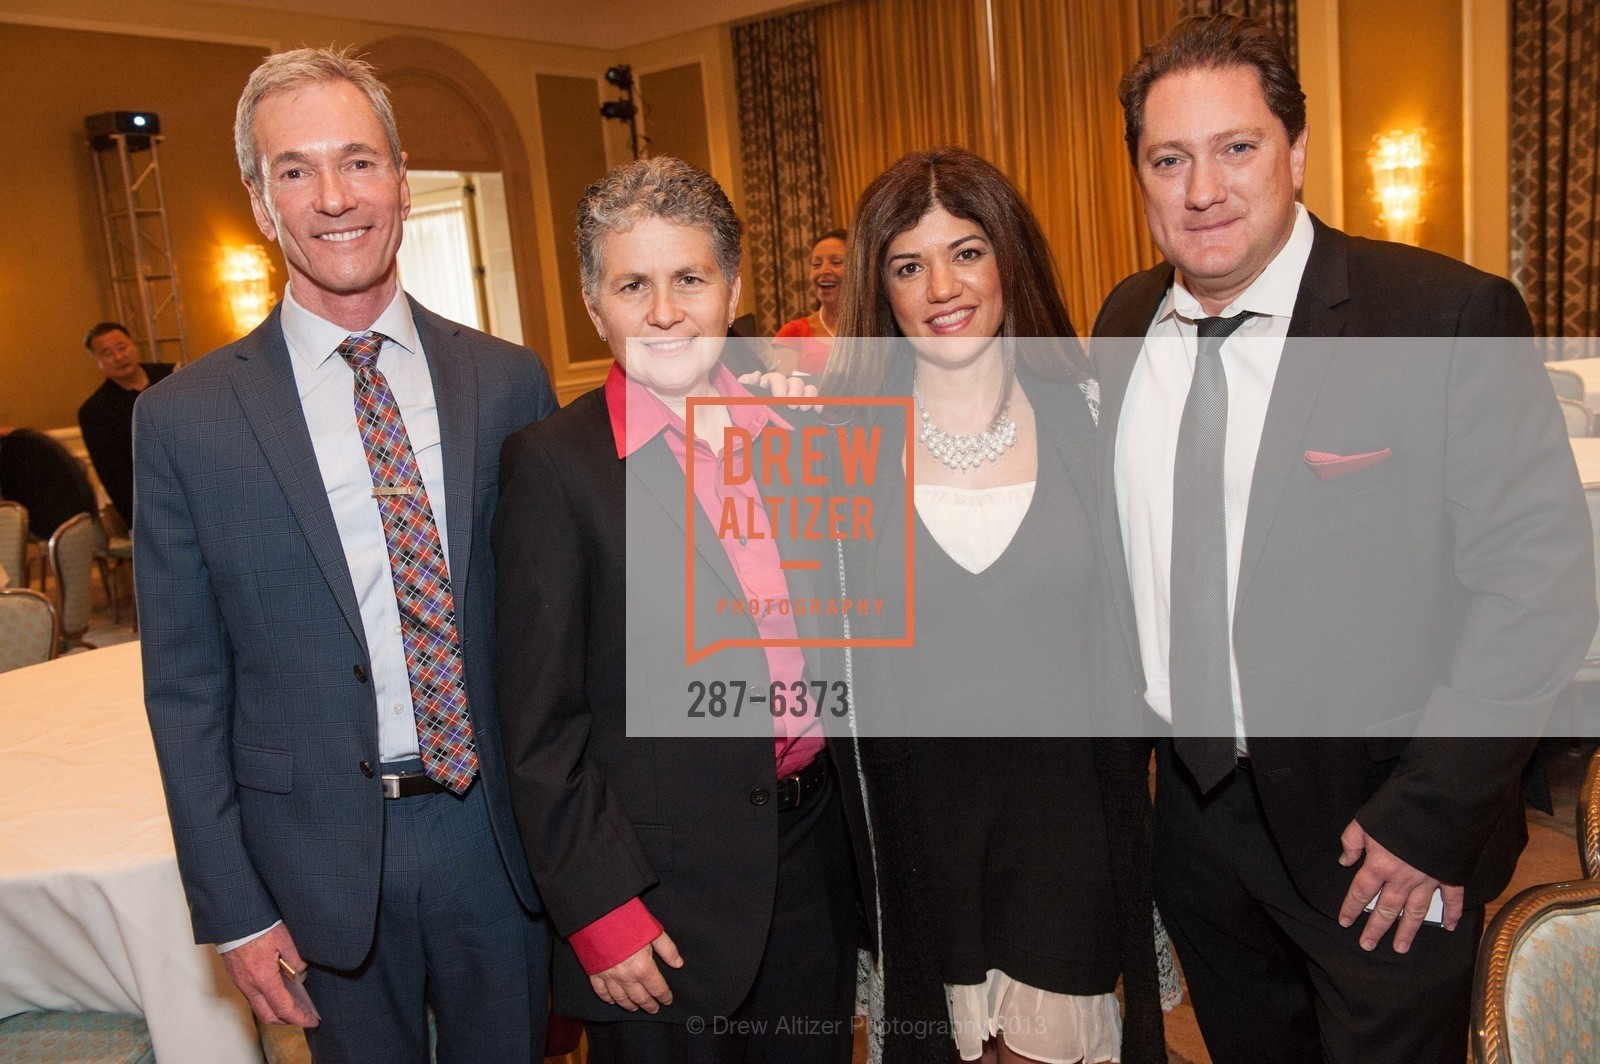 Jeff Schindler, Vitka Eisen, Shabnam Farneneh, Liam Mayclem, HEALTH RIGHT 360:  Be the Change 2013, US, November 8th, 2013,Drew Altizer, Drew Altizer Photography, full-service agency, private events, San Francisco photographer, photographer california